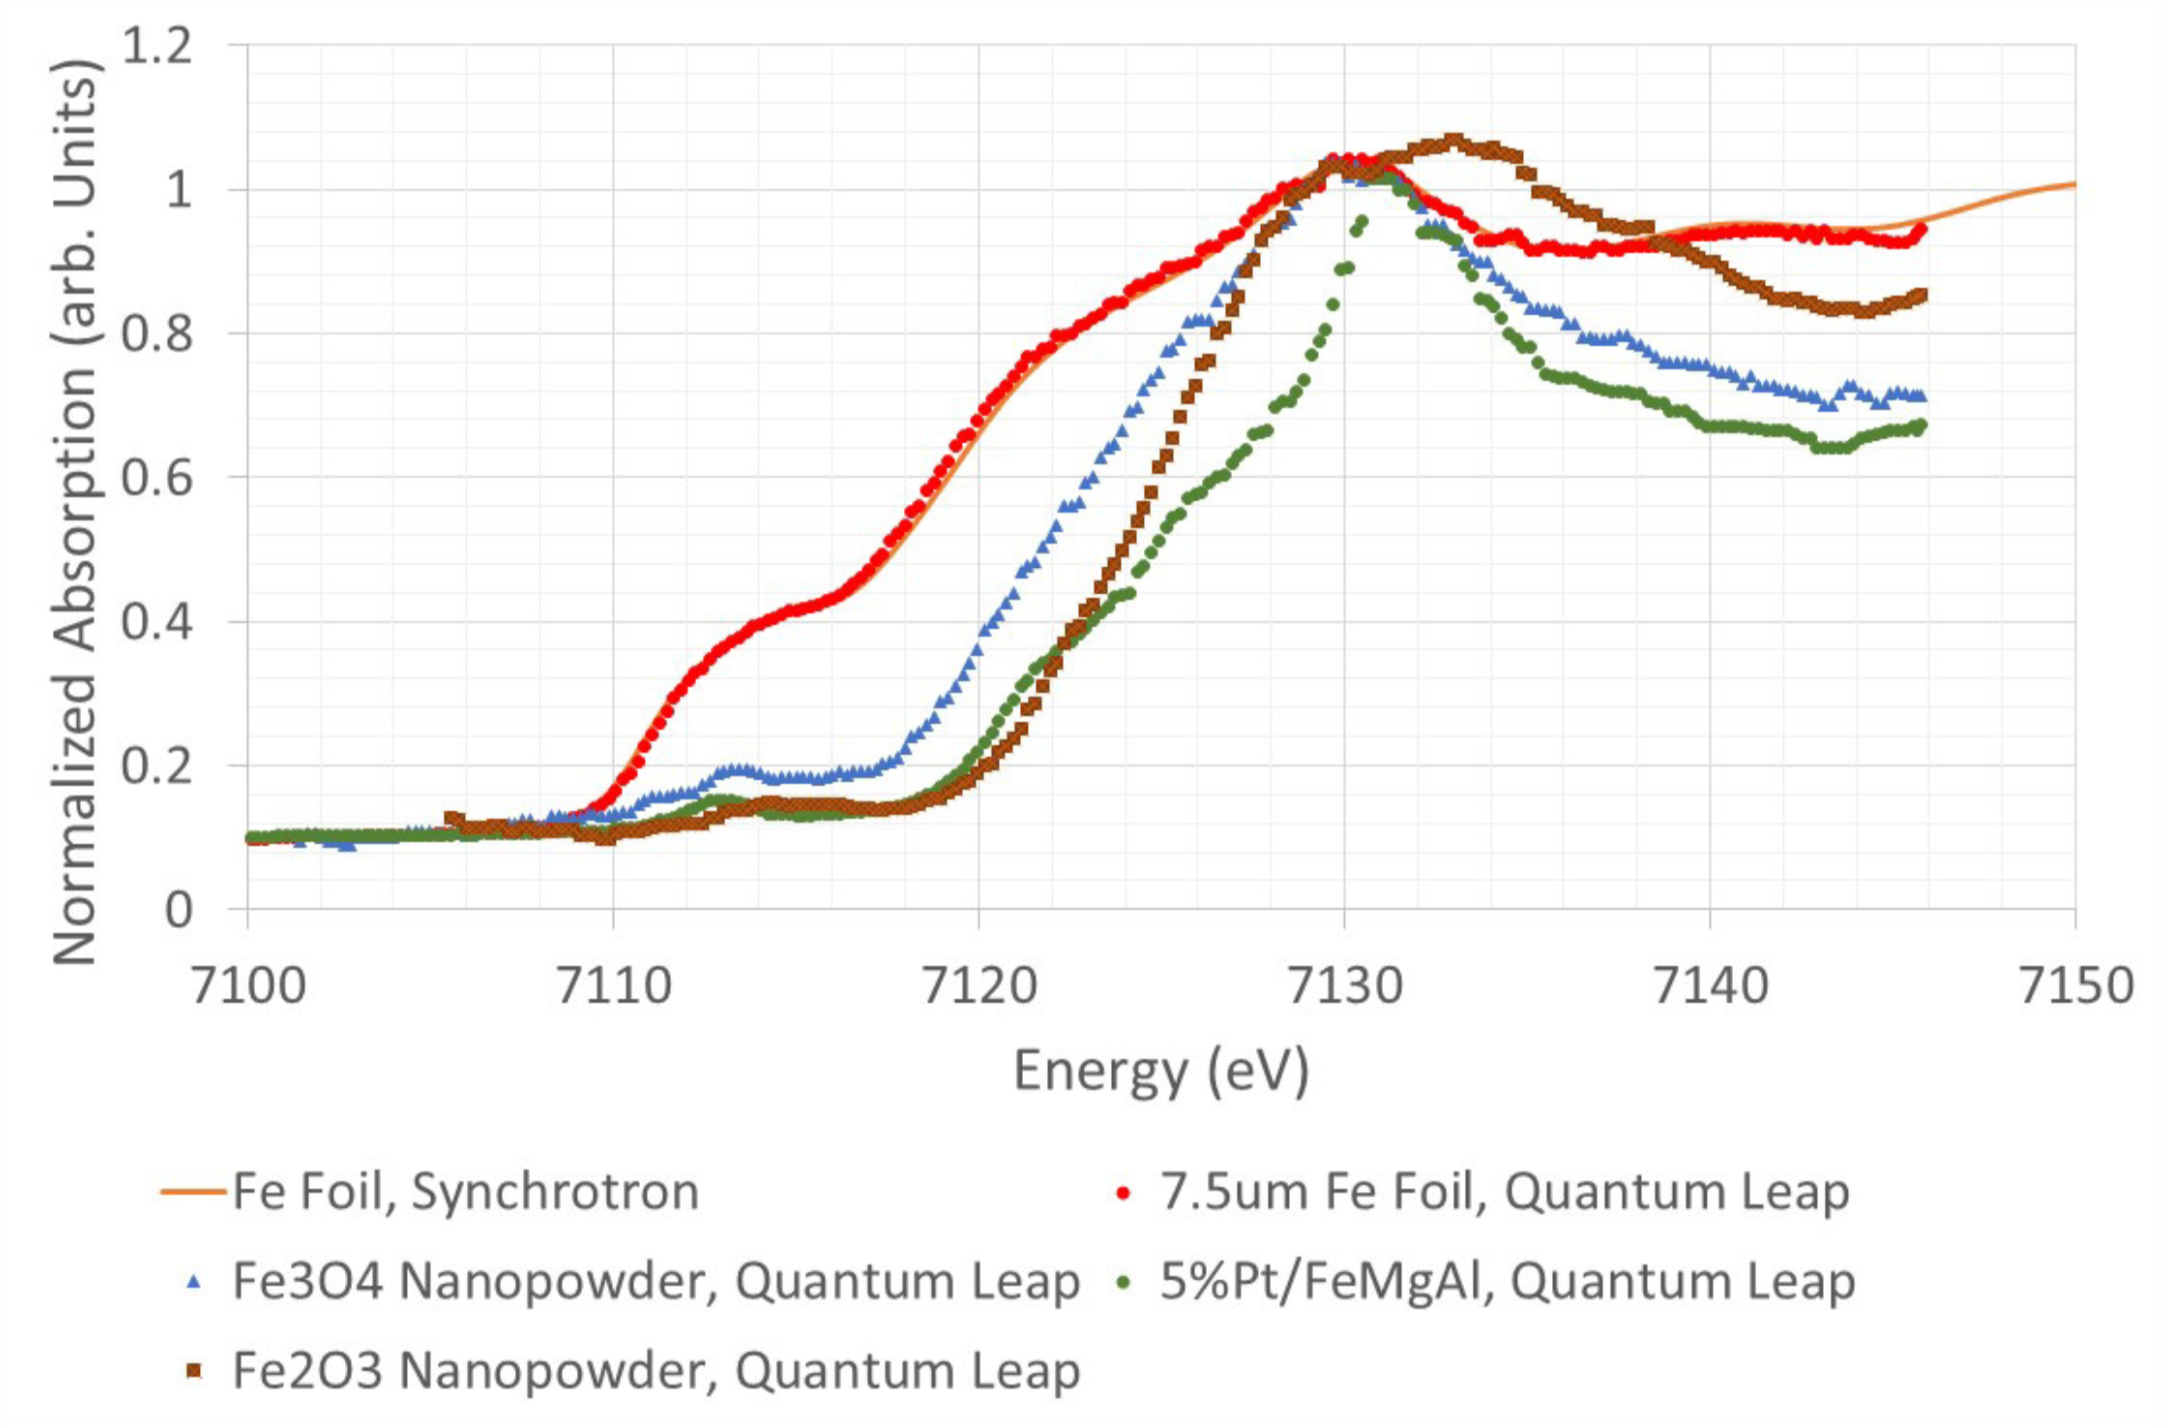 Sub-eV In Your Lab - Measurement precision in XANES and EXAFS is characterized by the energy resolution of the XAS instrument. QuantumLeap results been verified against synchrotron data, showing a high degree of positive correlation to 0.5 eV. Available with both Johansson and von Hamos geometrieis, QuantumLeap provides the ultimate in XAS flexibility for your laboratory.